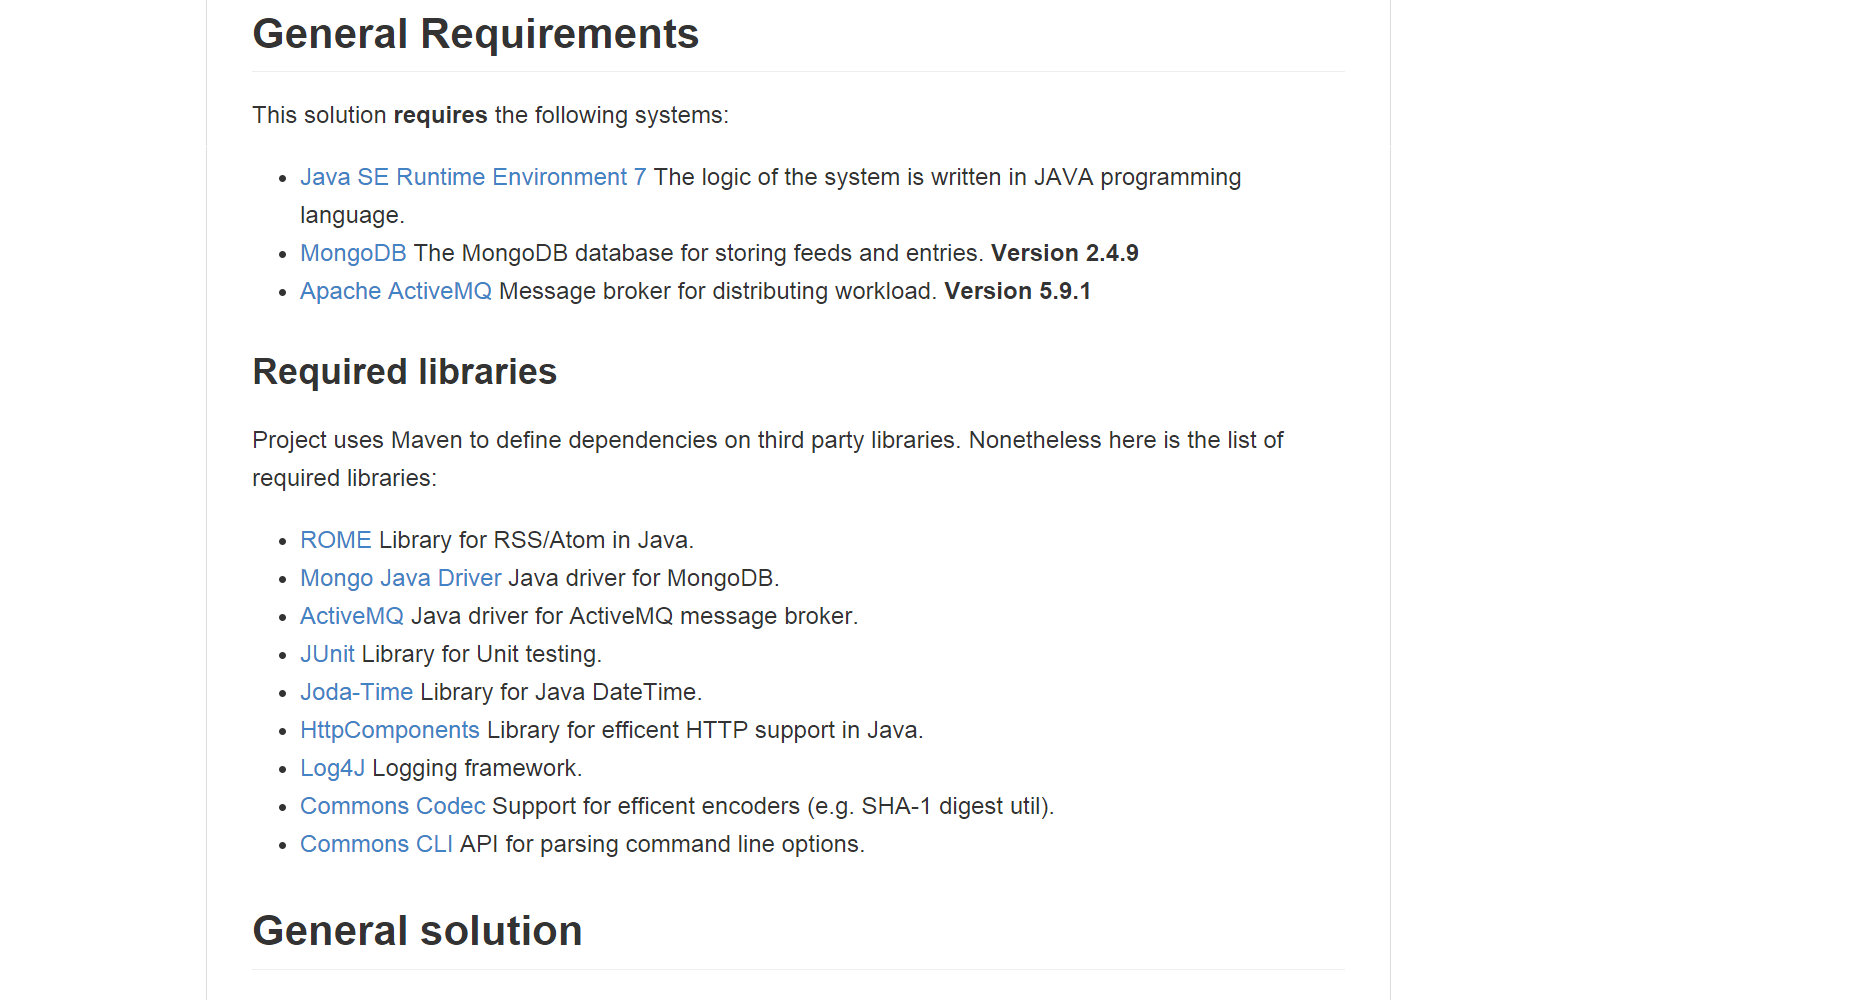 Distributed RSS/Atom reader